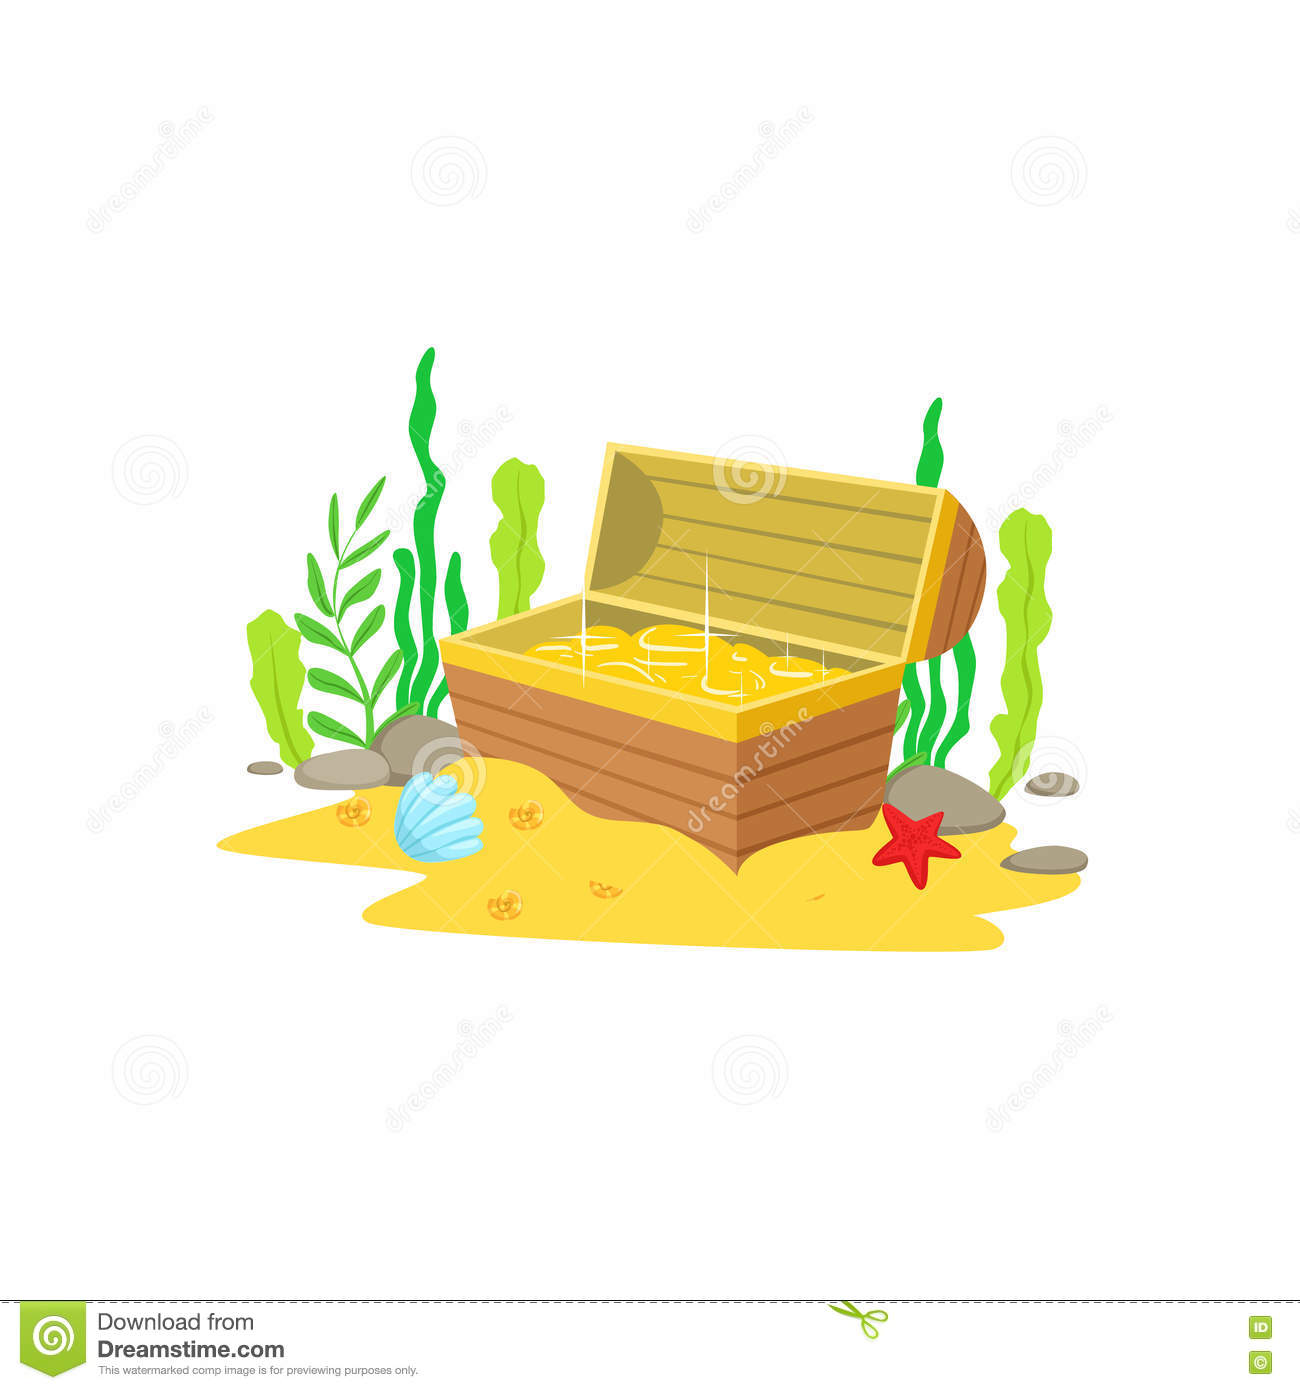 Wooden Boat Sandbox Wooden Free Engine Image For User